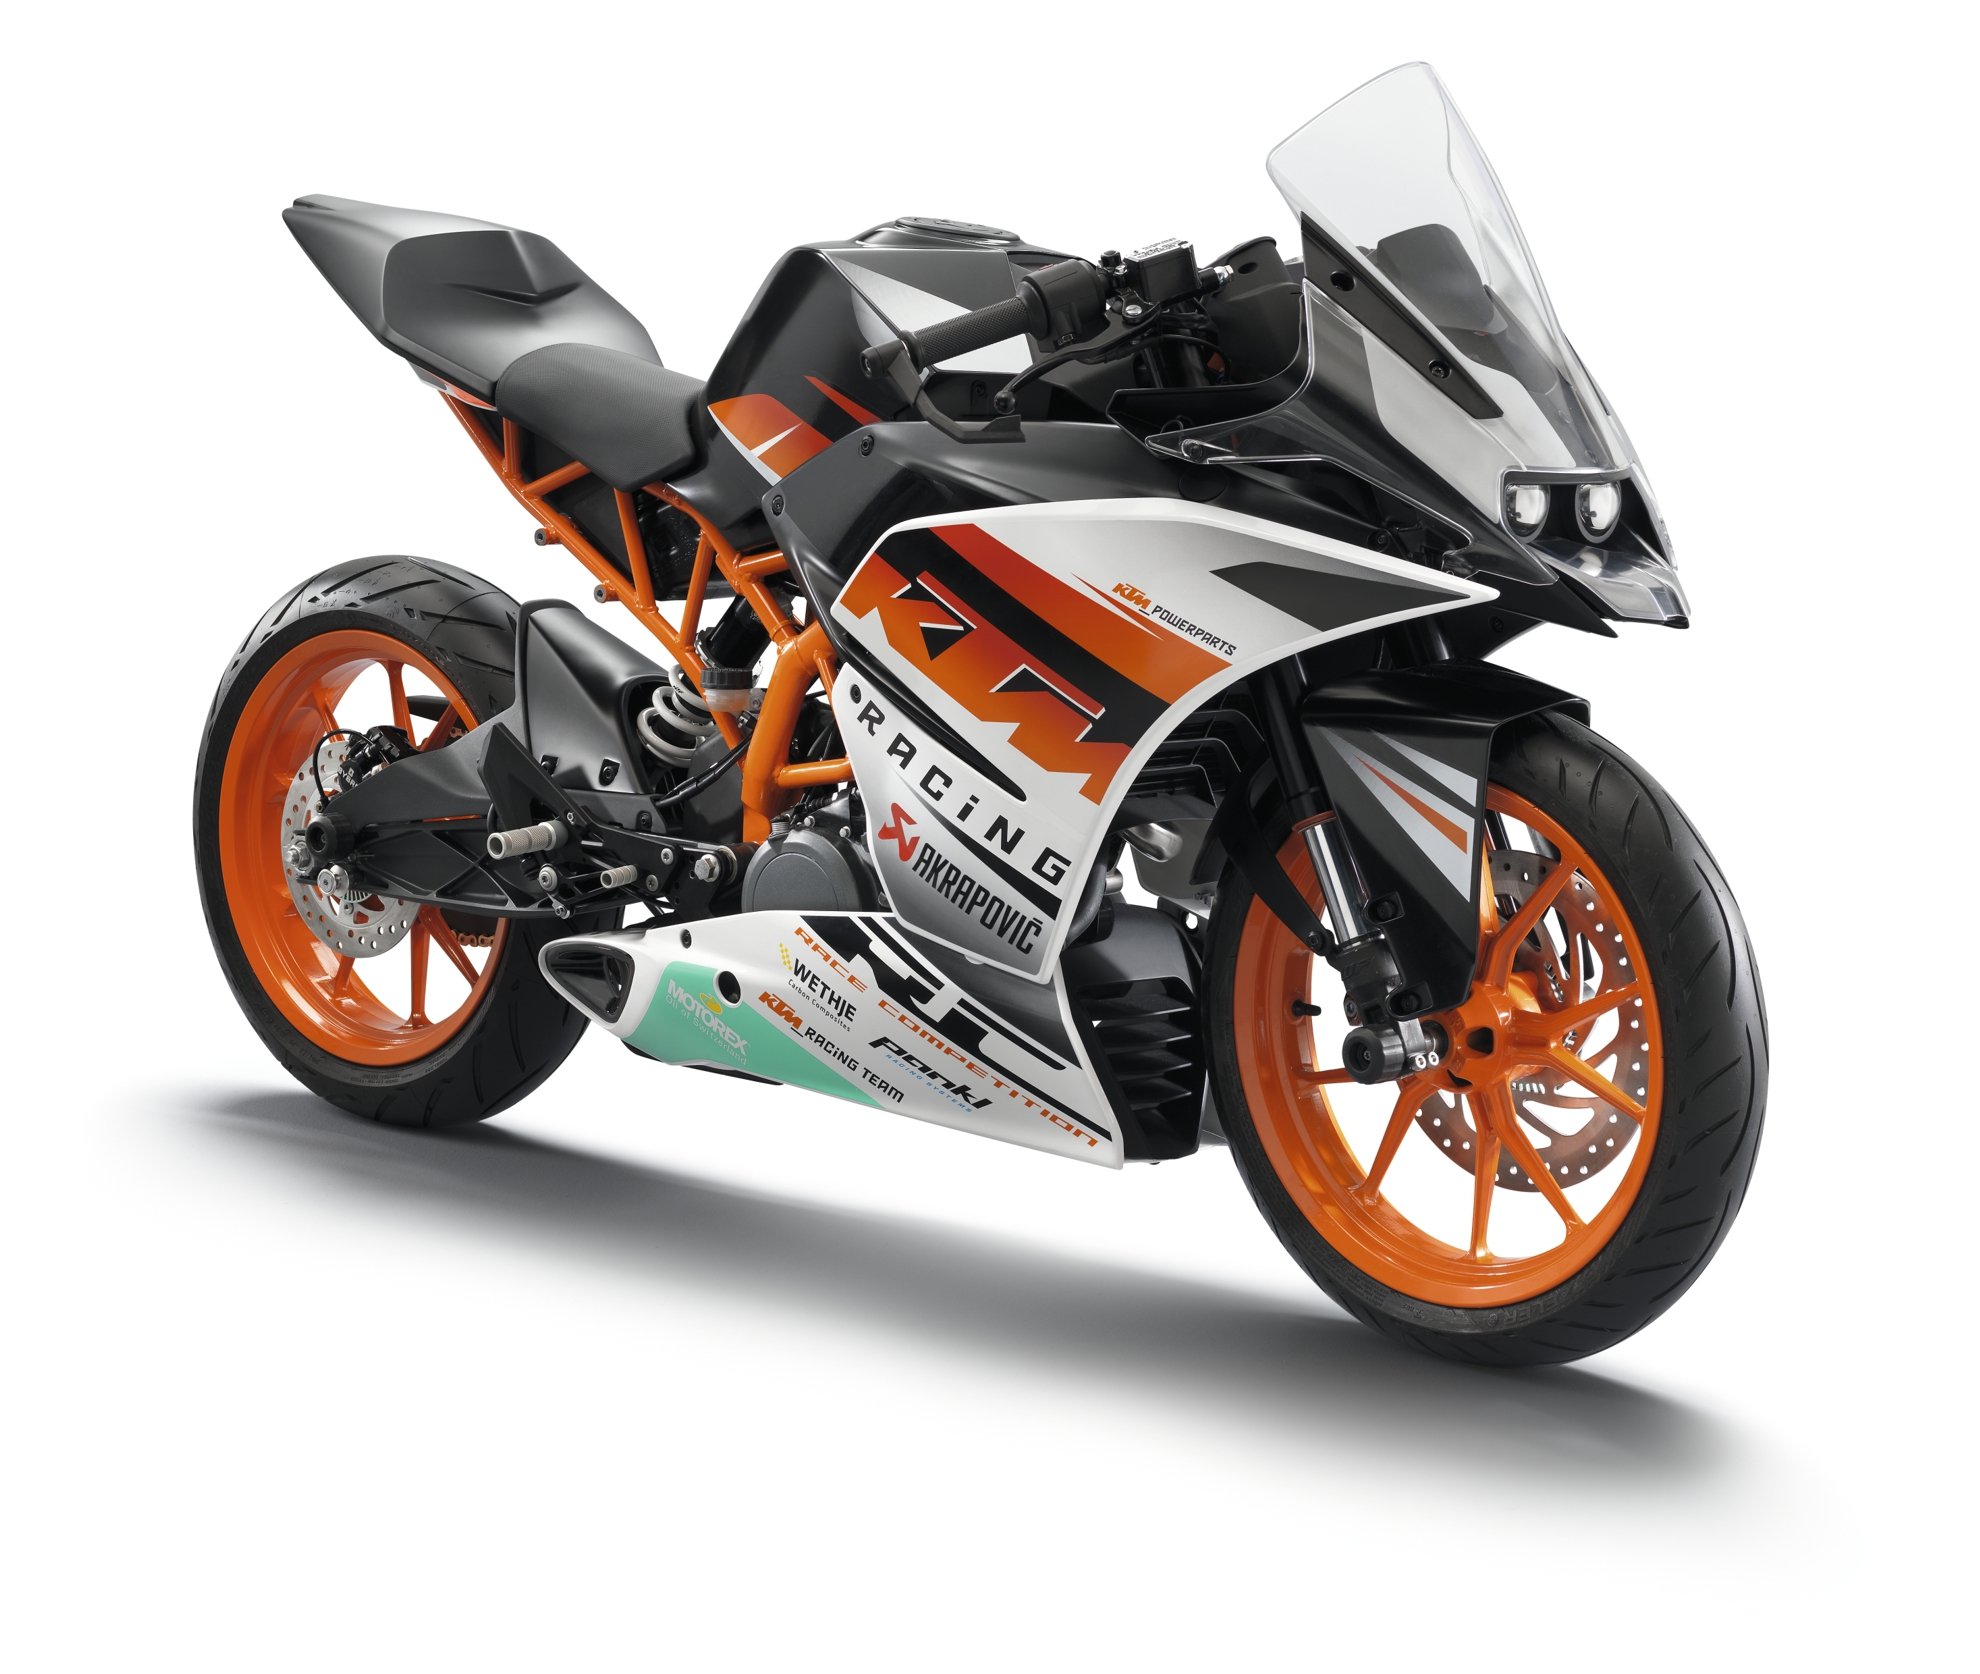 2015 Supergp Champions Trophy To Include New Ktm Auto Electrical 1998 Wiring Diagrams